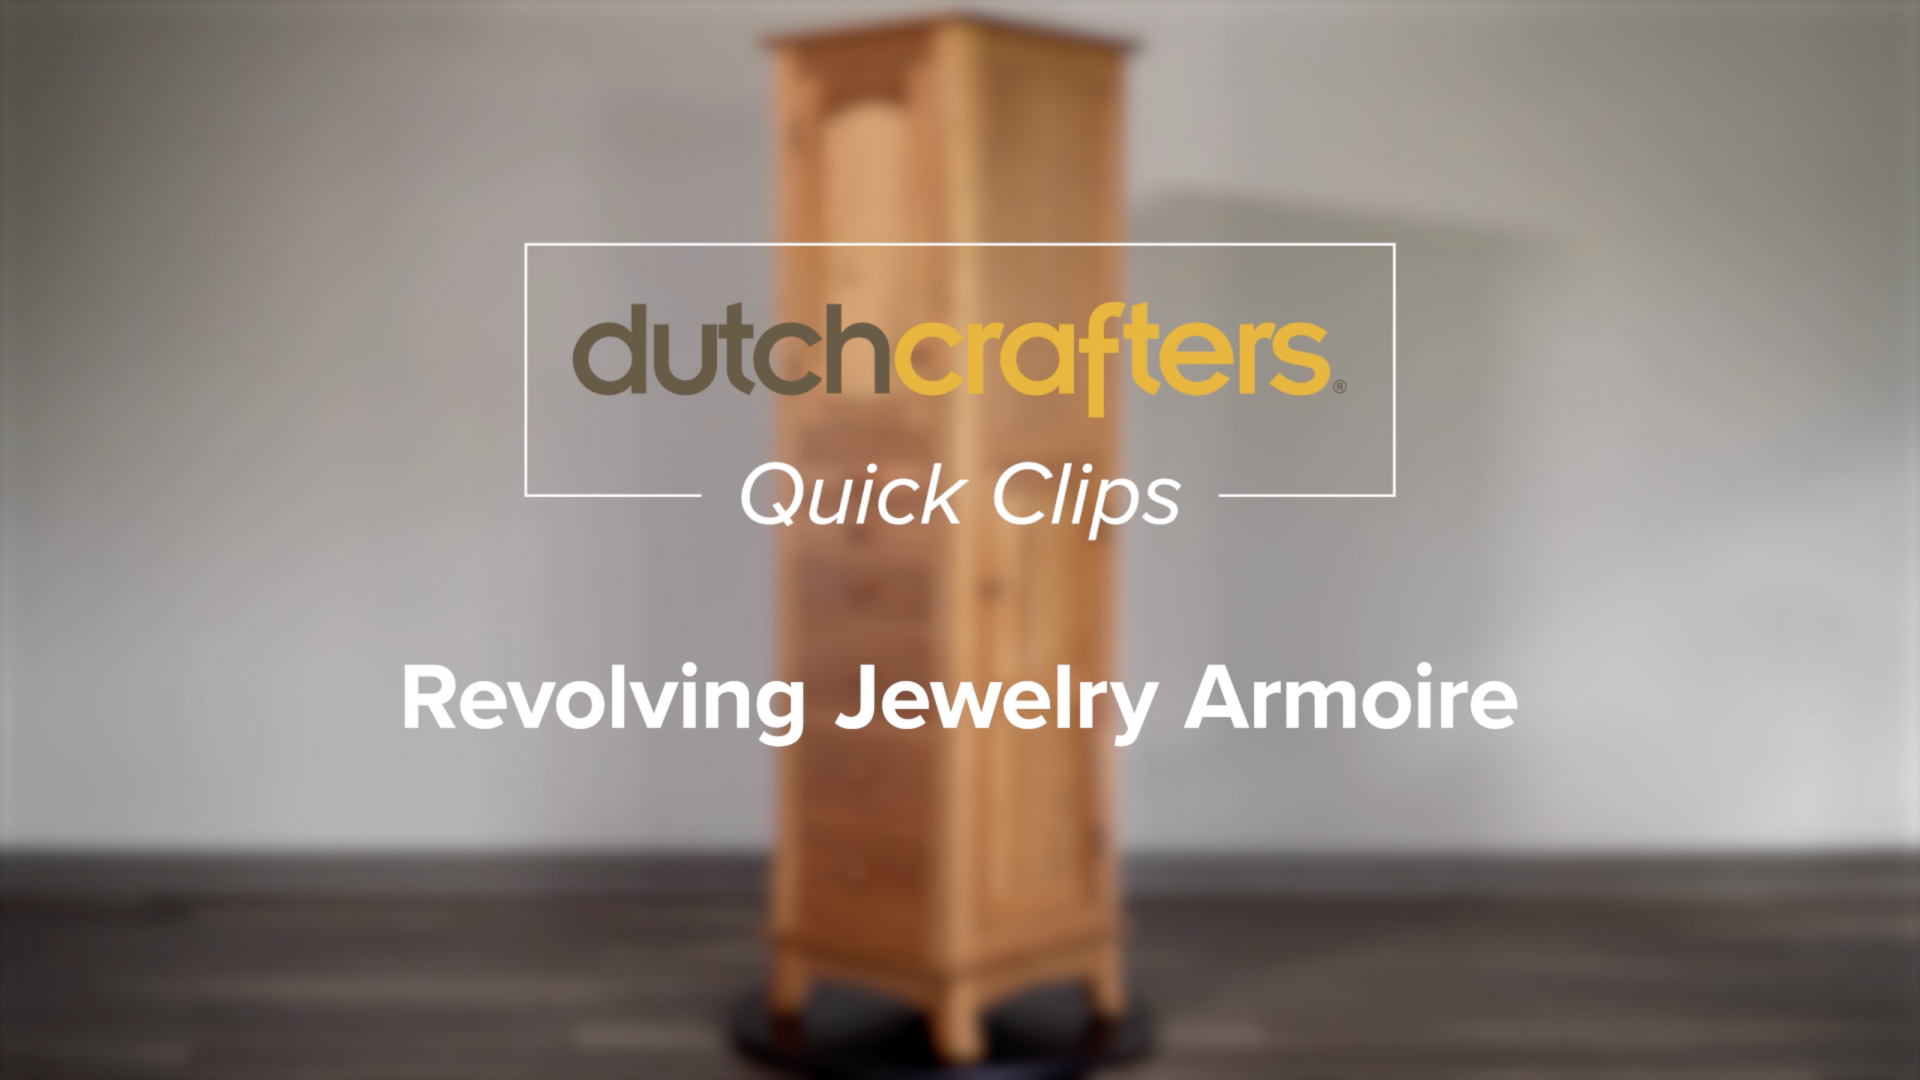 10-Drawer Revolving Jewelry Armoire Video Title Screen